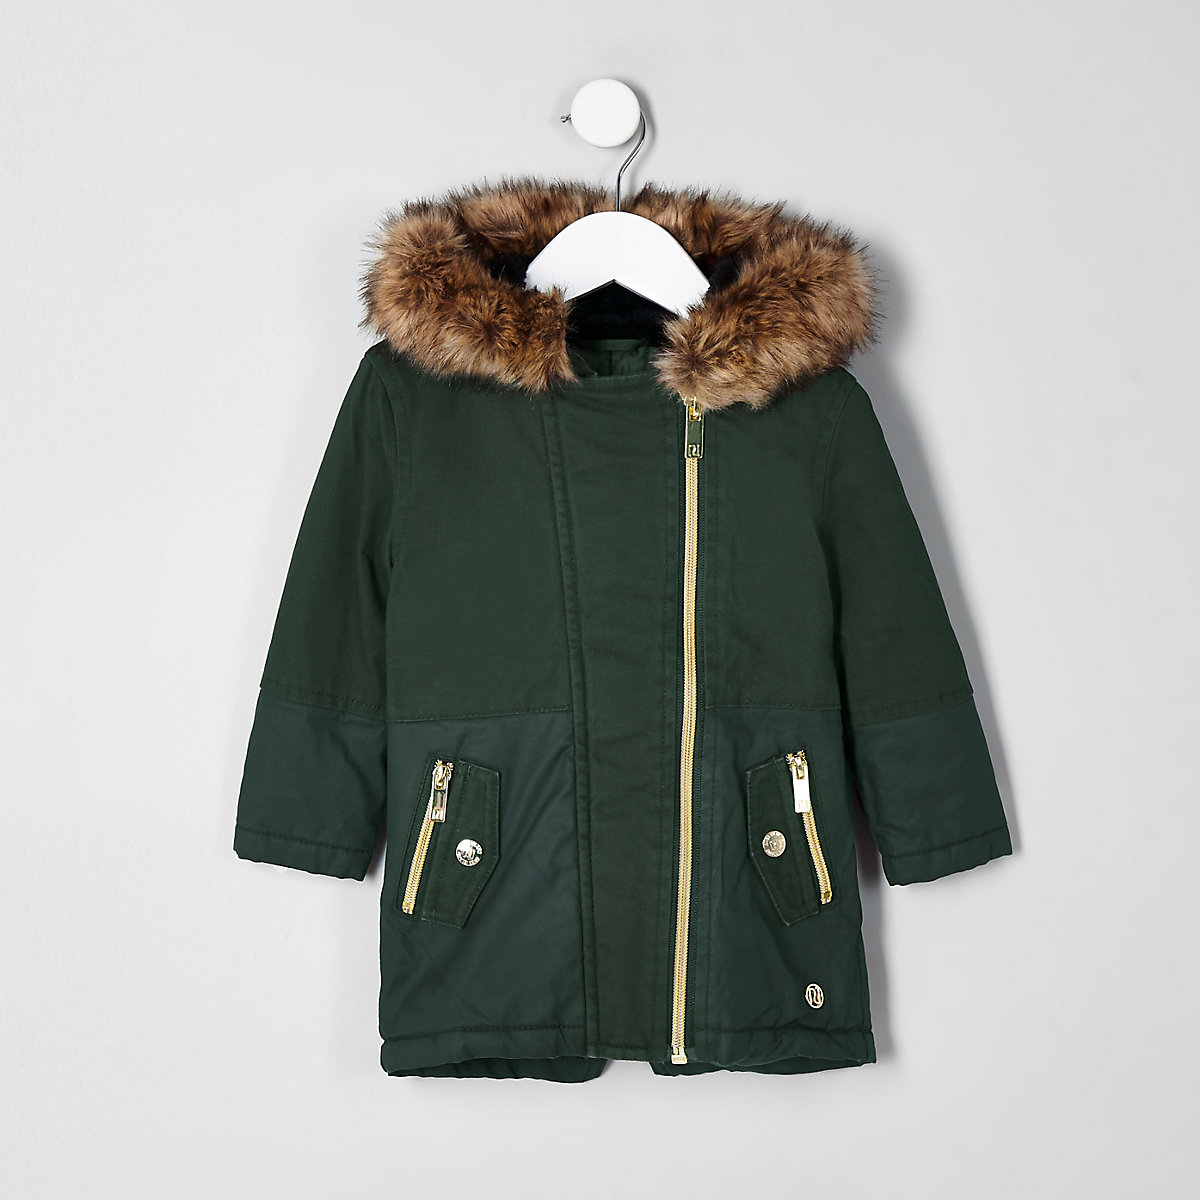 6b8a8432e1fb Girls mini khaki faux fur trim parka jacket - Baby Girls Coats ...